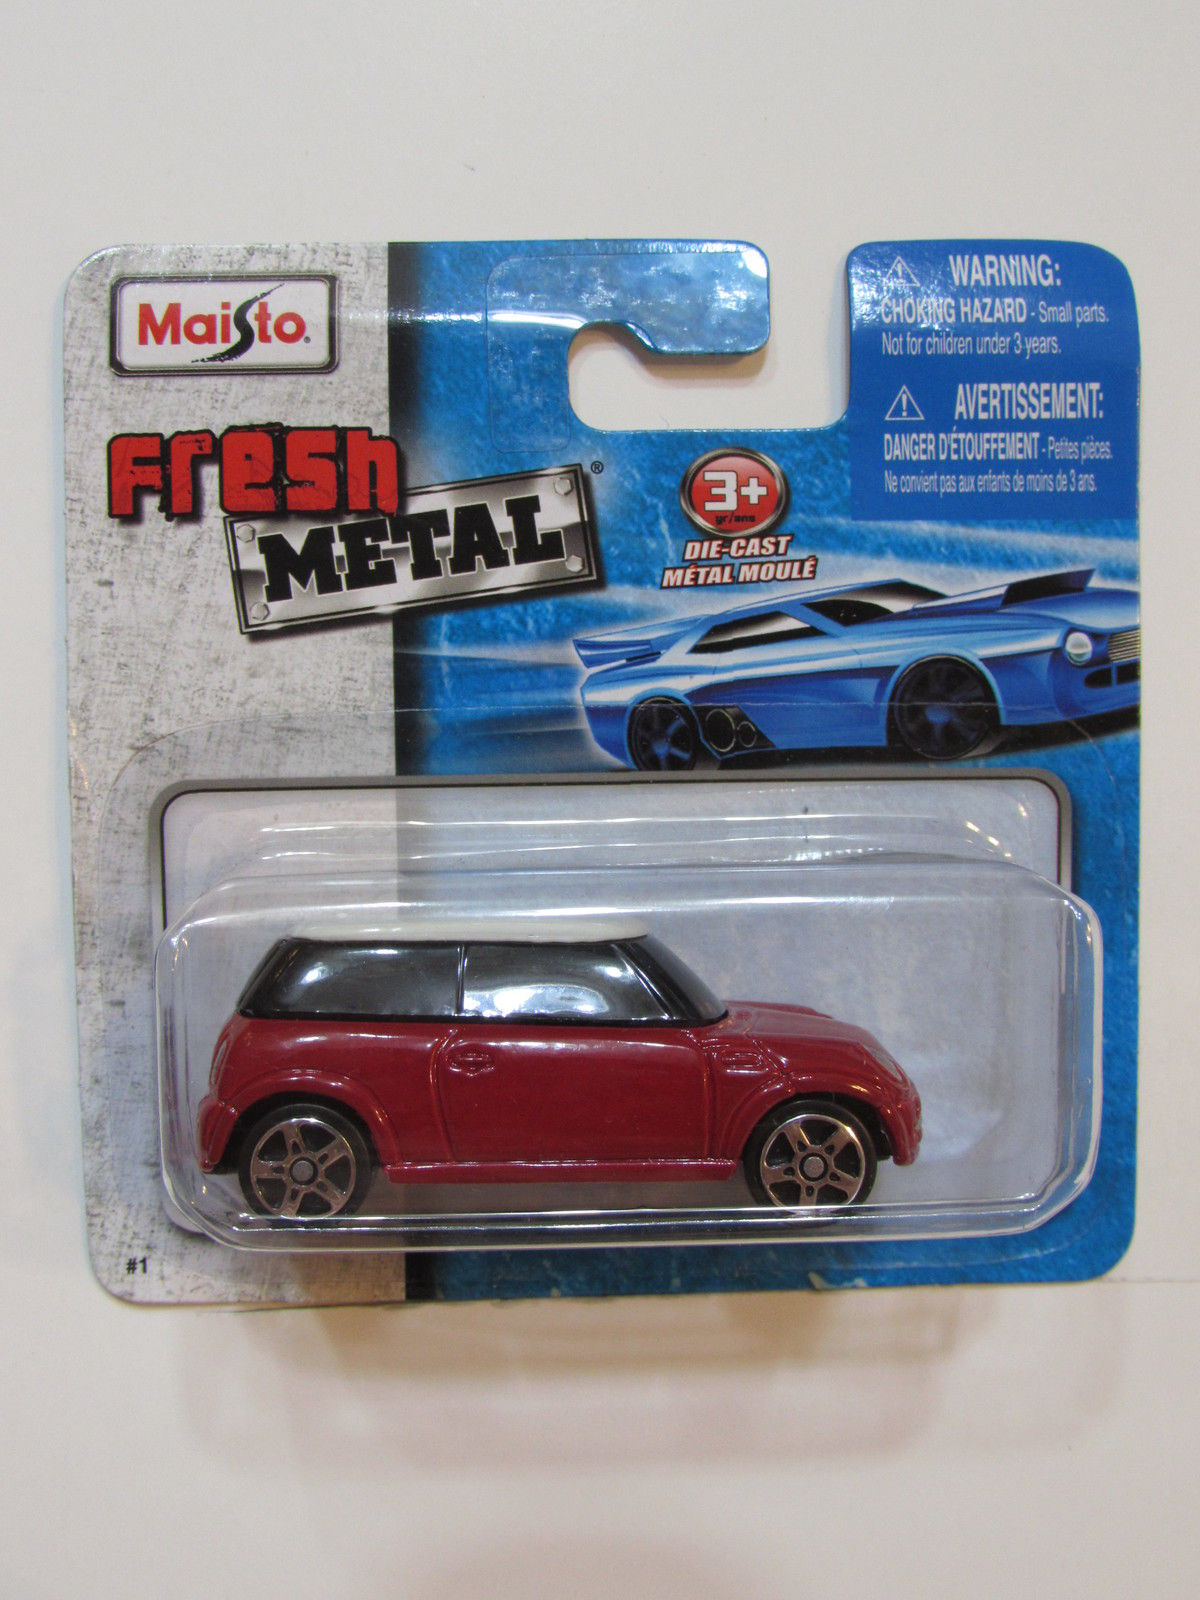 MAISTO METAL MINI COOPER 1:64 SCALE